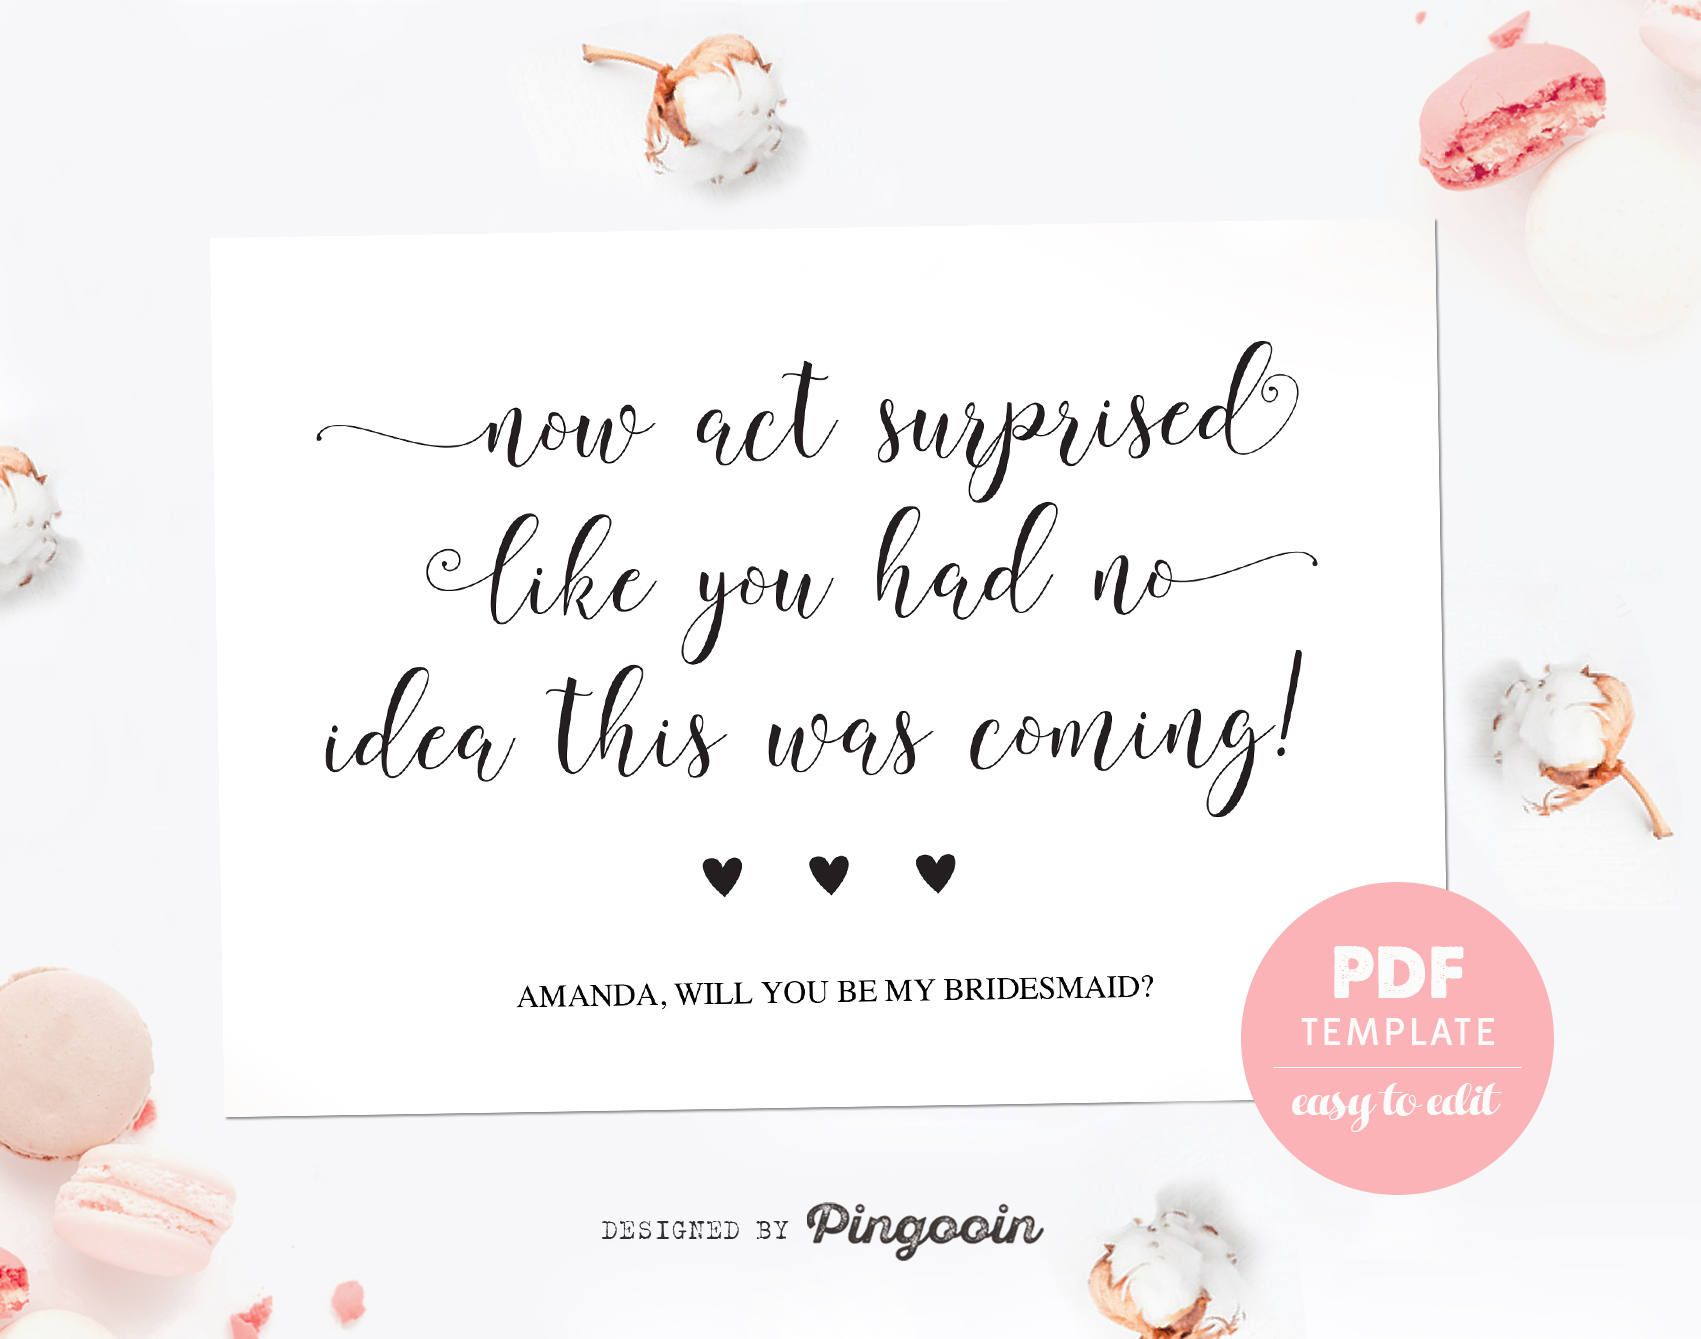 Will You Be My Bridesmaid Letter Template - Bridesmaid Card Funny Bridesmaid Template Card Made Of Honor Card